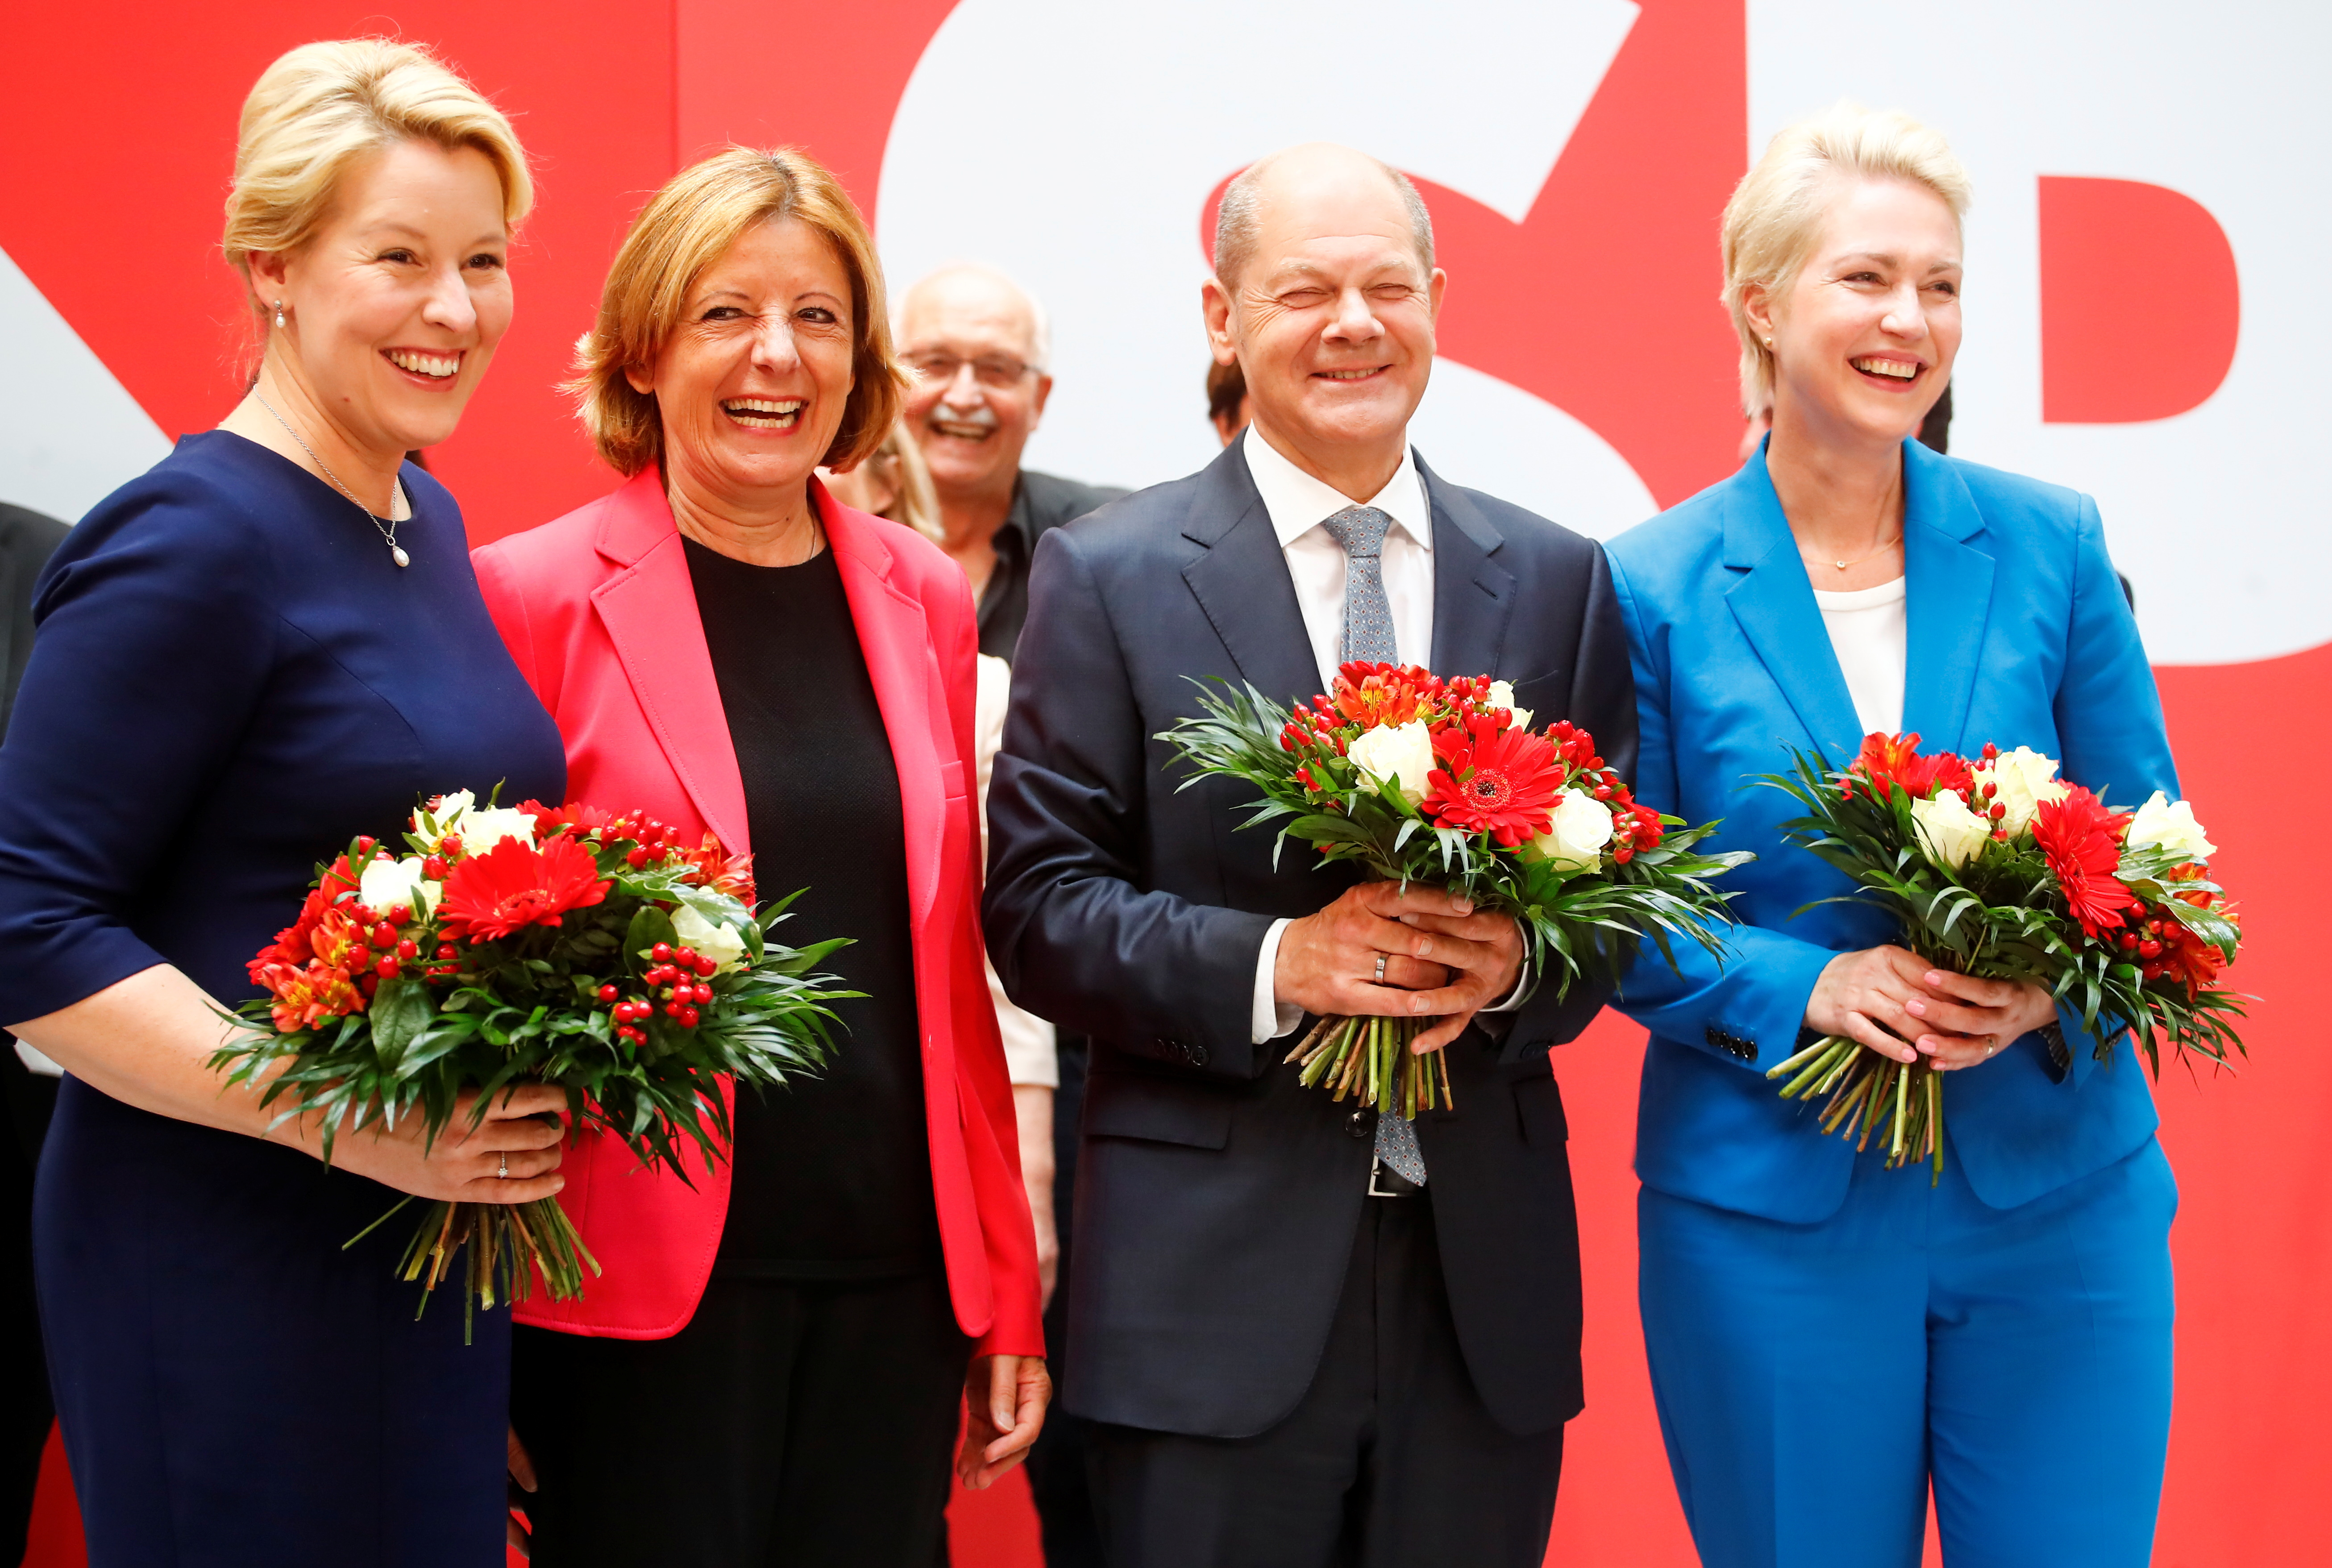 Social Democratic Party (SPD) leader and top candidate for chancellor Olaf Scholz, Mecklenburg-Western Pomerania state Prime Minister Manuela Schwesig, Rhineland-Palatinate State Premier Malu Dreyer and SPD member Franziska Giffey carry bouquets of flowers at their party leadership meeting, one day after the German general elections, in Berlin, Germany, September 27, 2021. REUTERS/Wolfgang Rattay